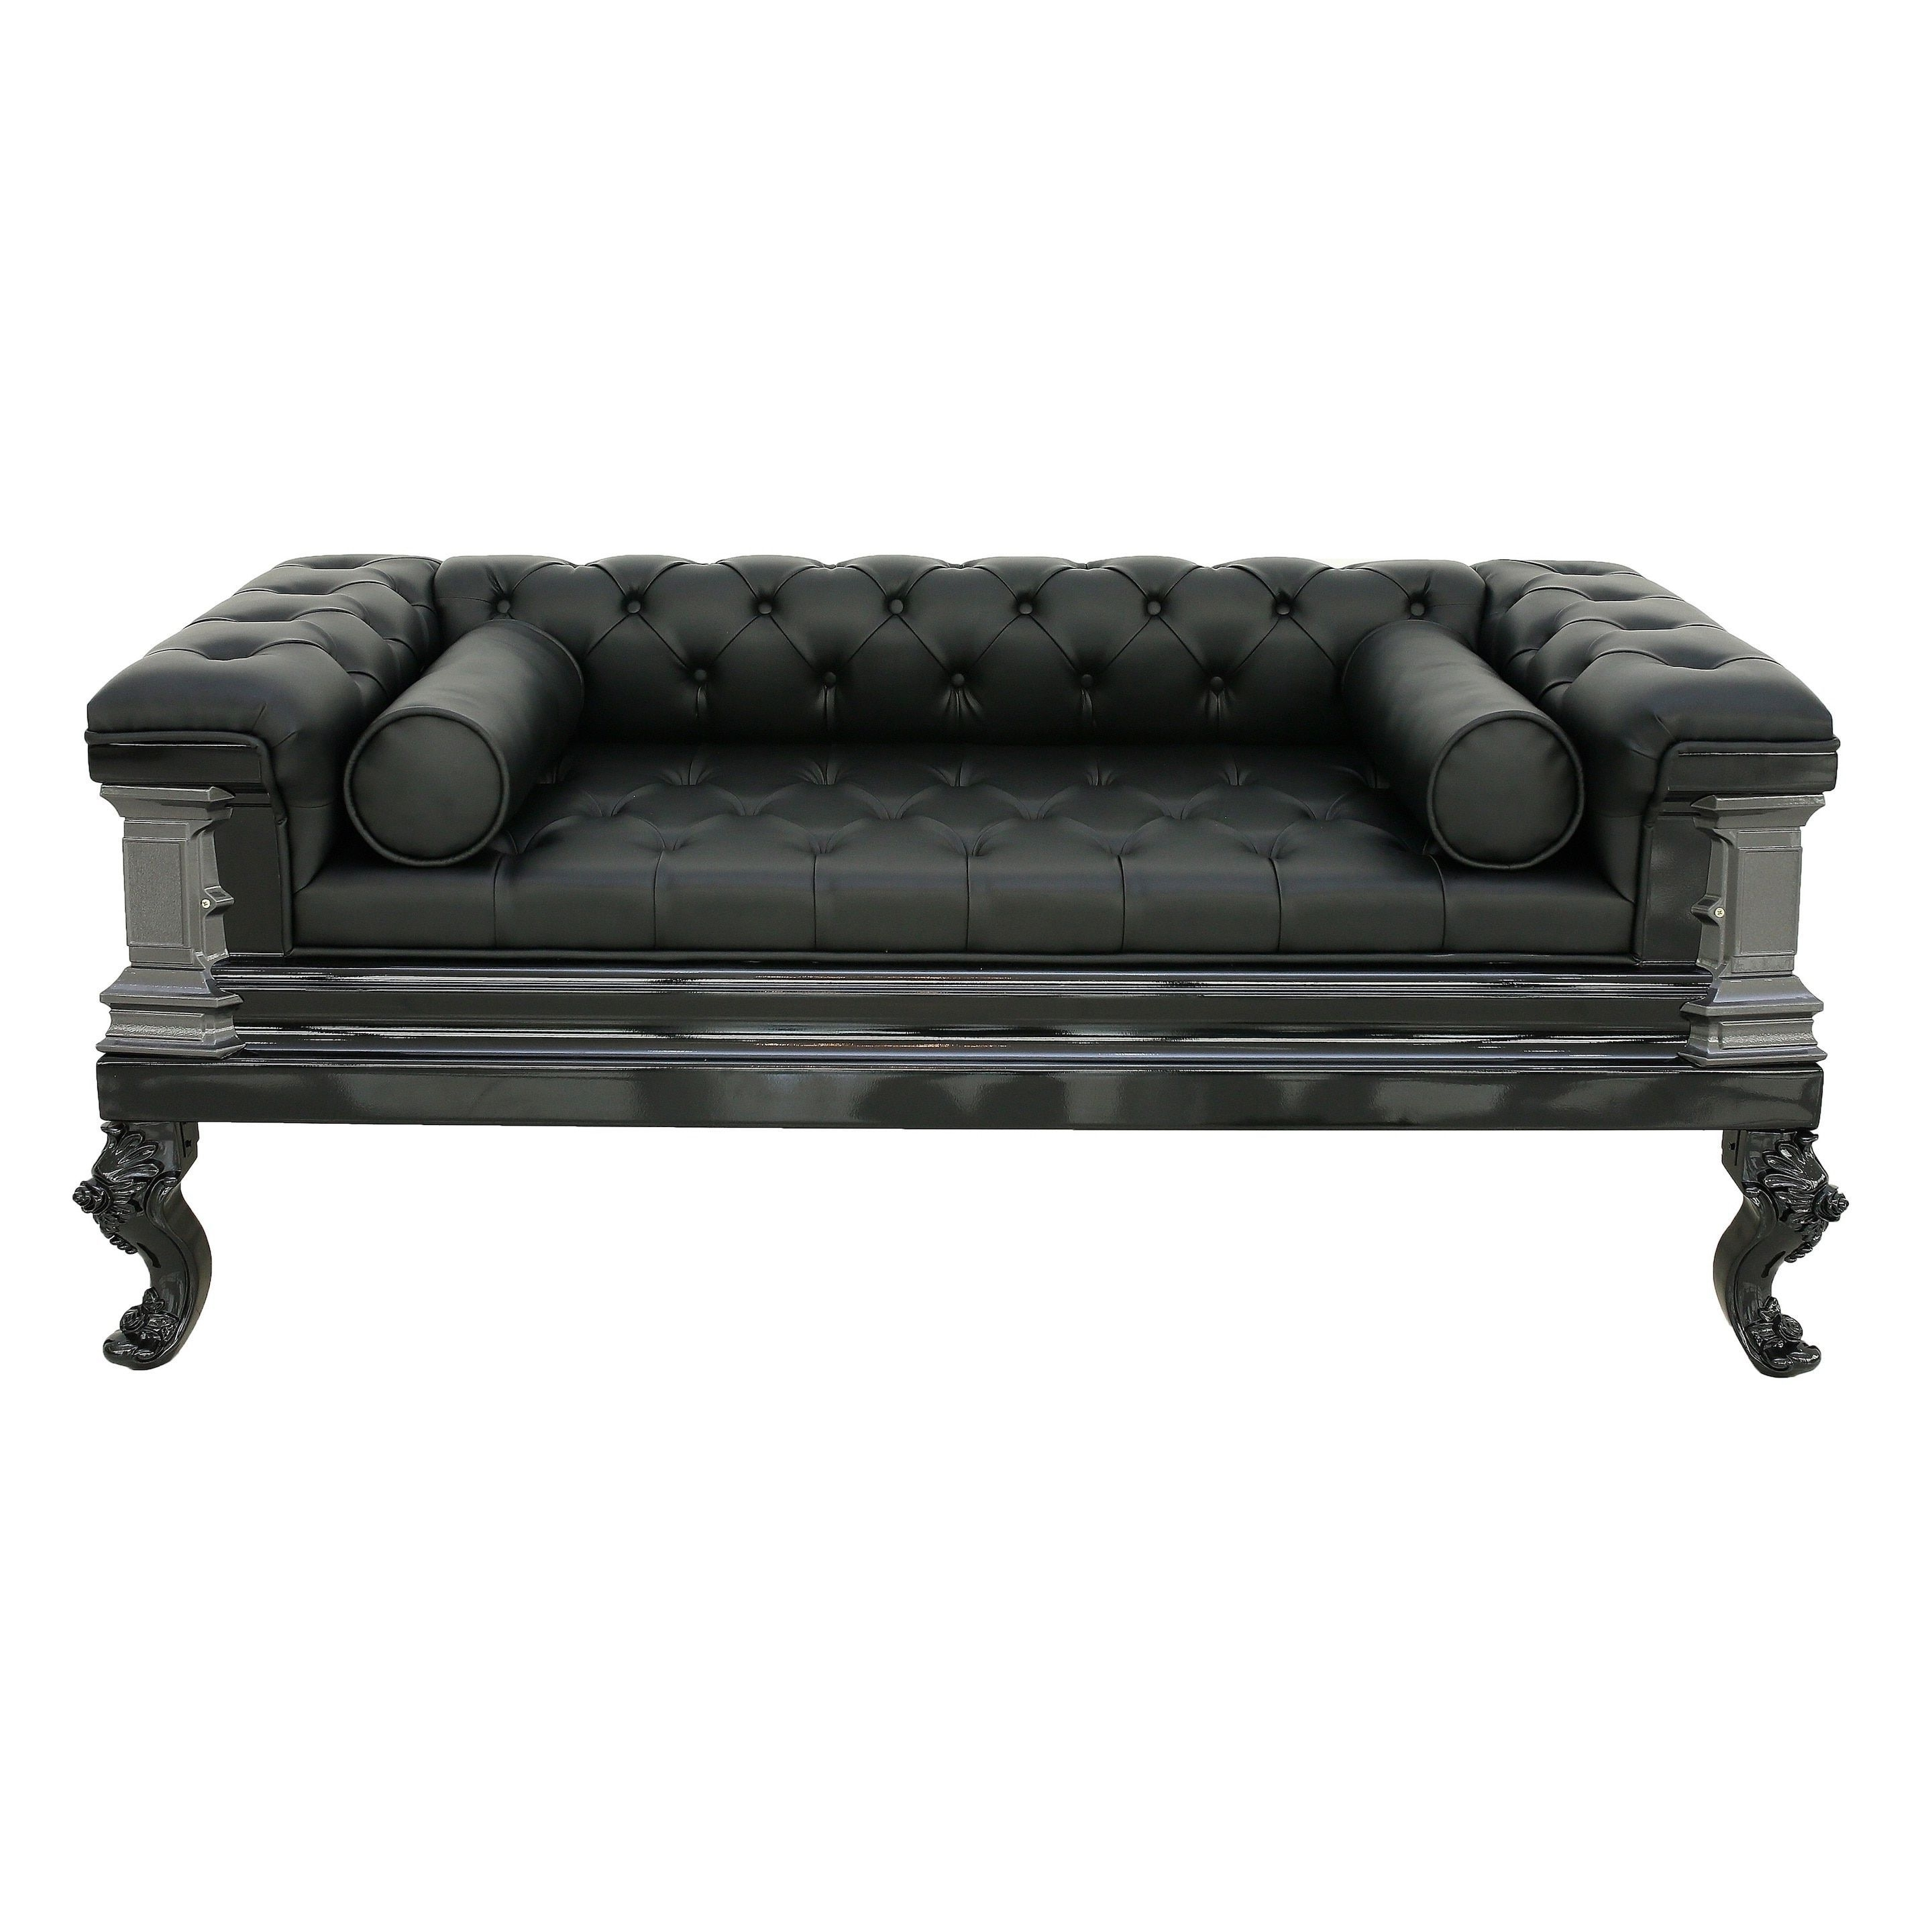 Gothic, Black Leather Sofas (Gallery 2 of 20)